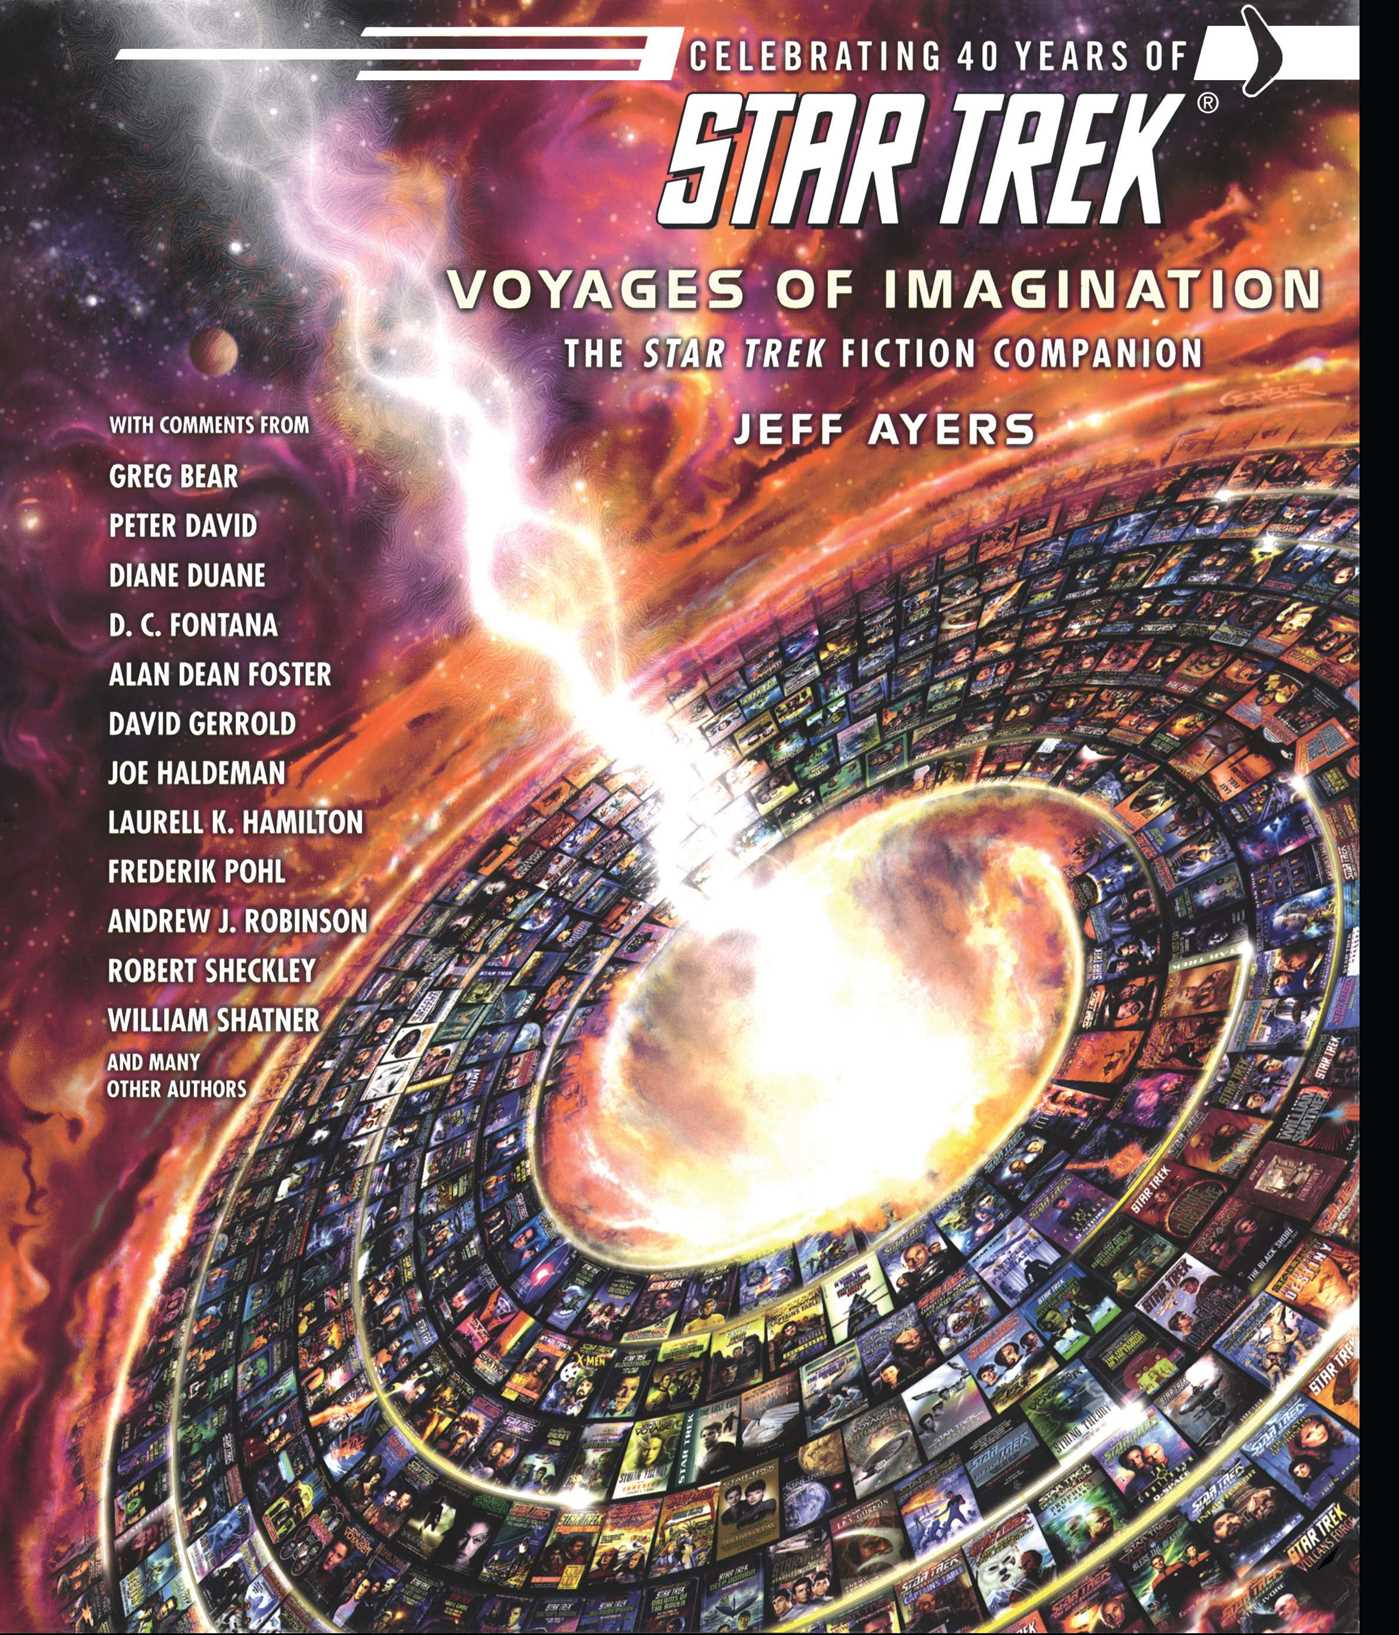 Star trek voyages of imagination the star trek fiction companion 9781416503491 hr